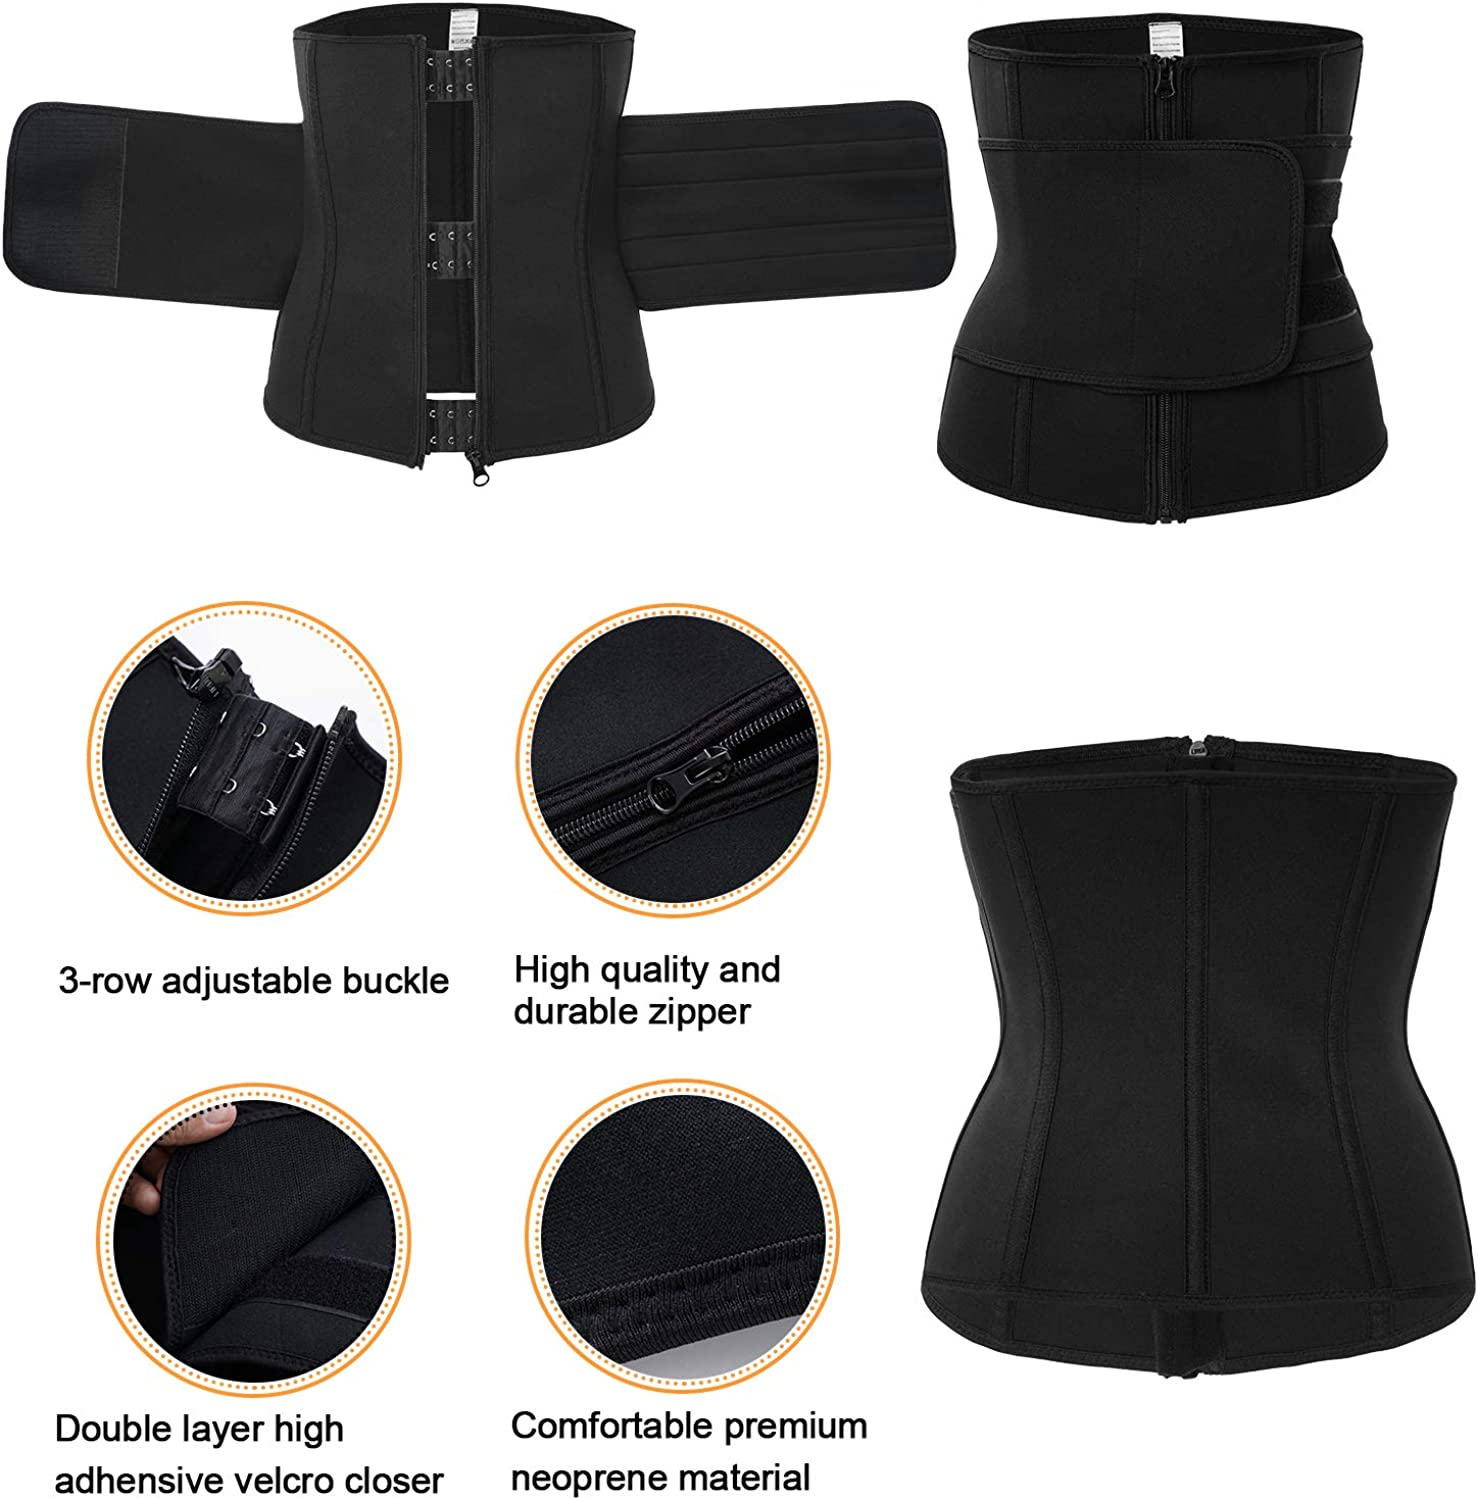 Ursexyly Women Waist Trainer Cincher Belt Tummy Control Sweat Girdle Workout Slim Belly Band for Weight Loss